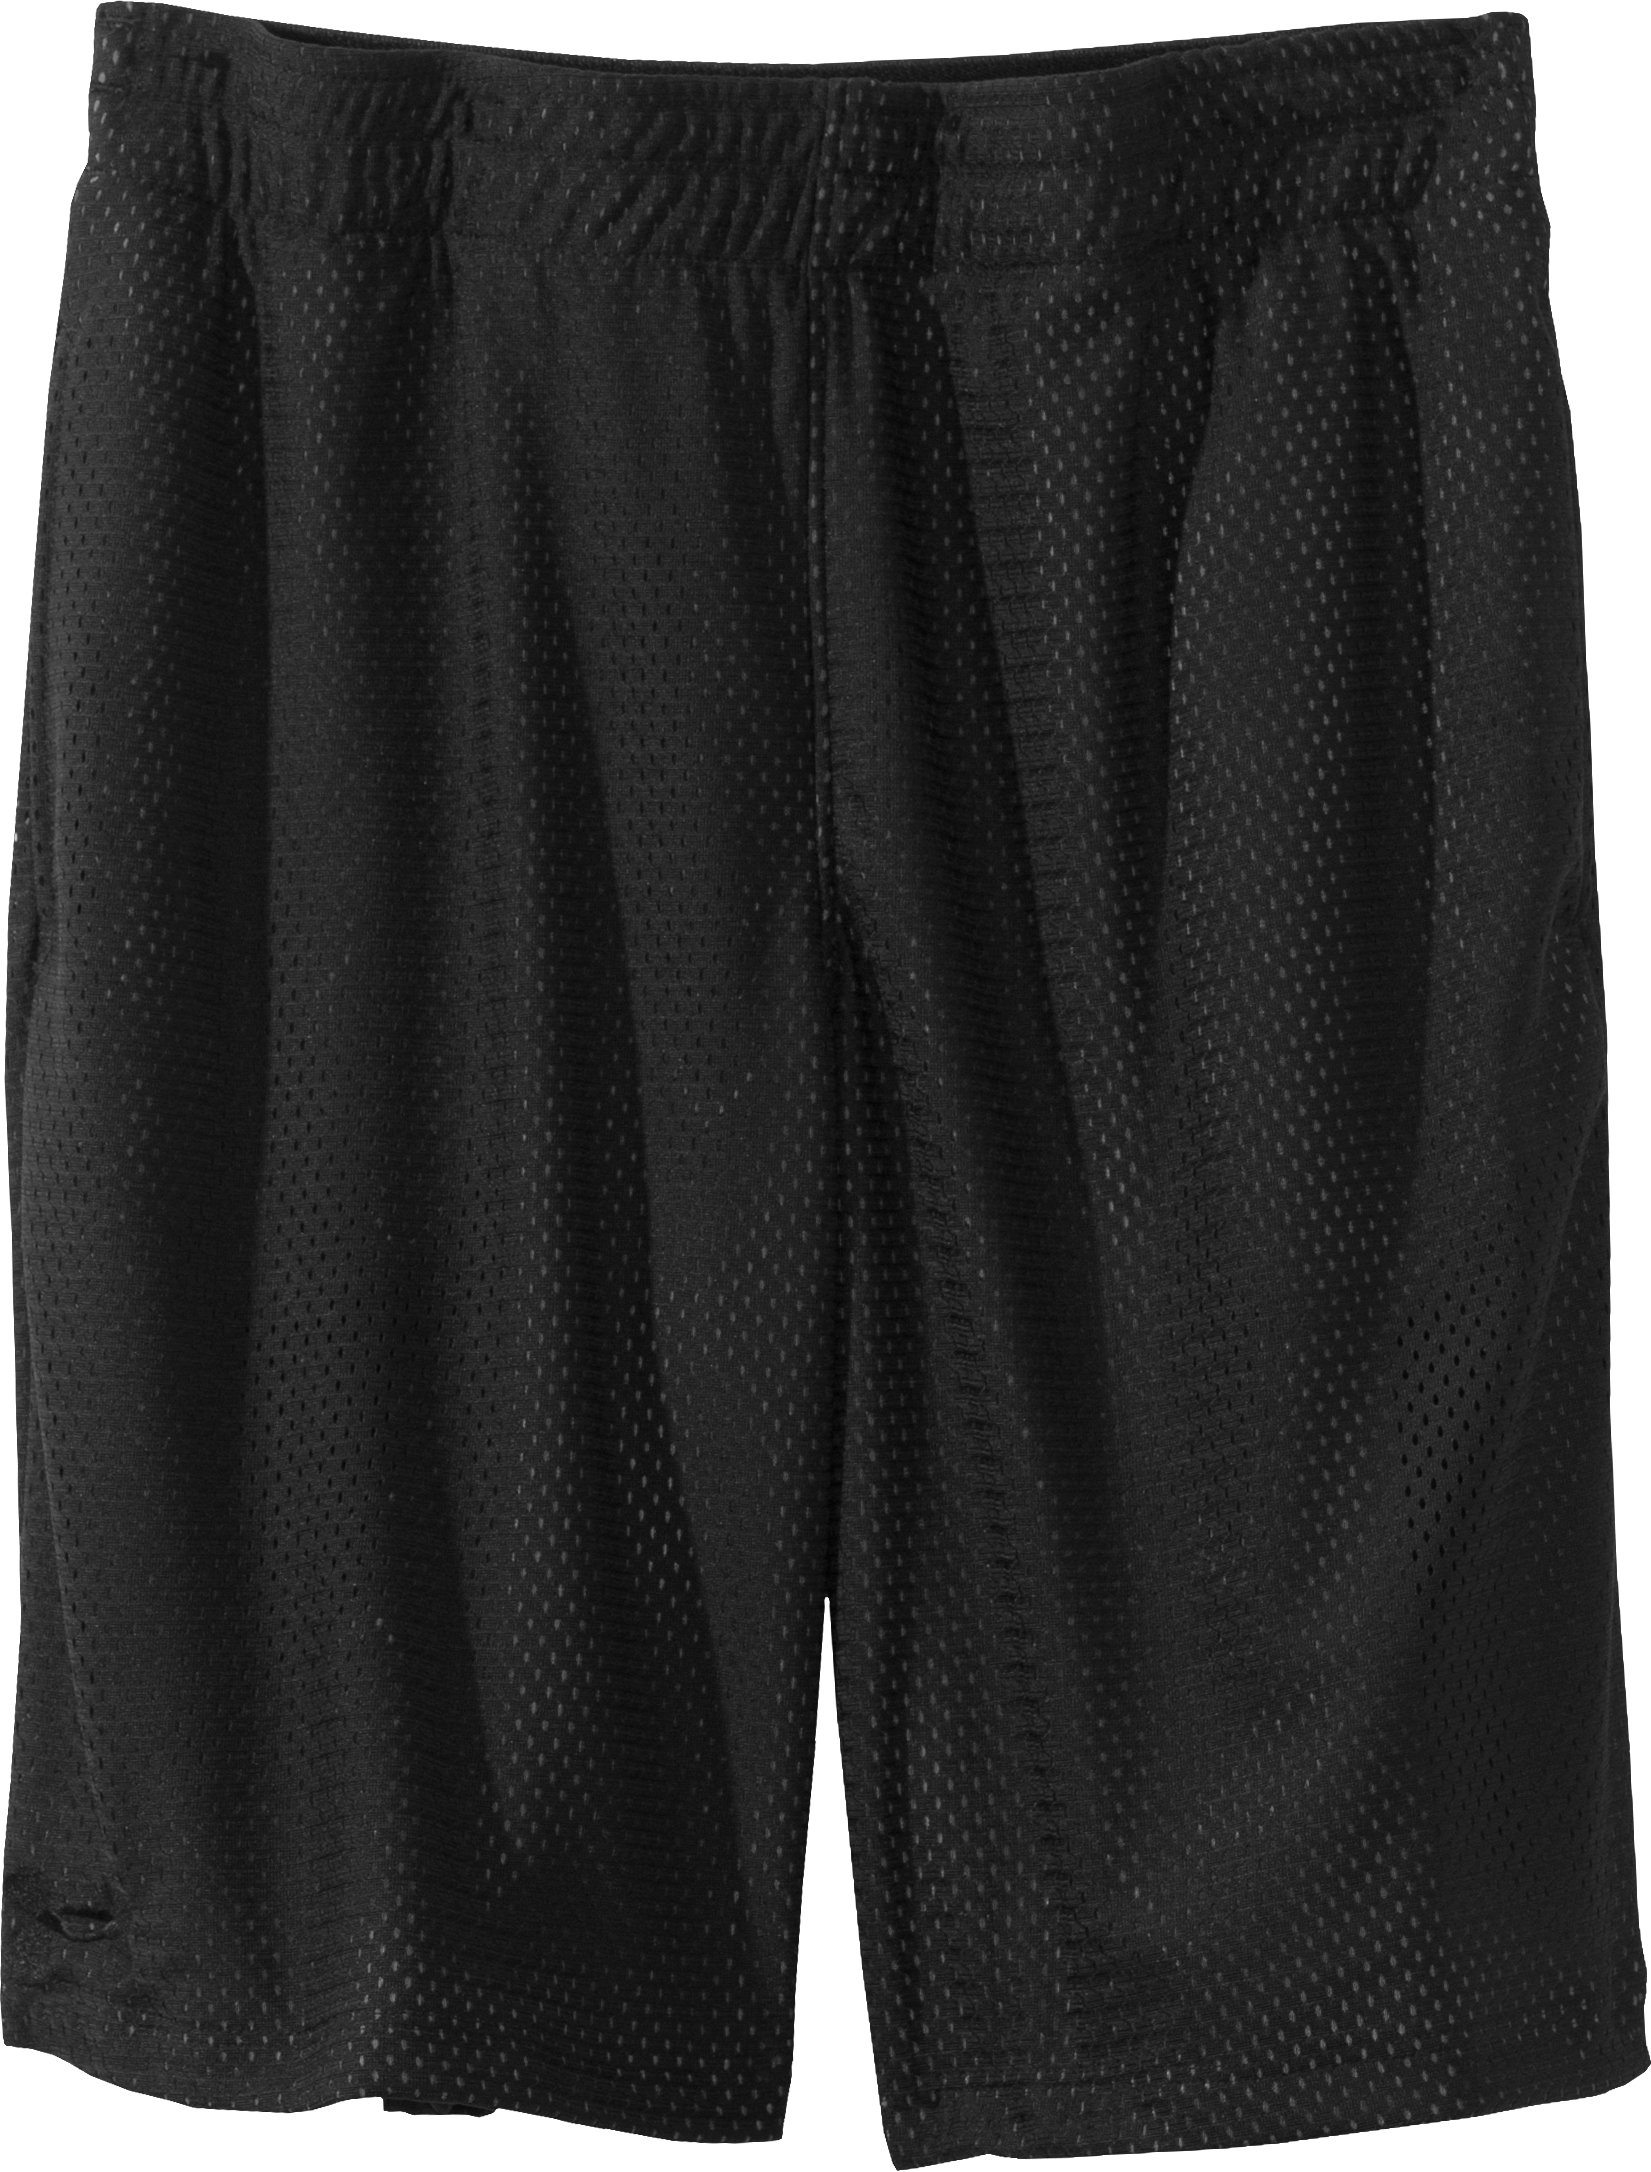 "Boys' UA Renegade 9"" Shorts, Black , Laydown"